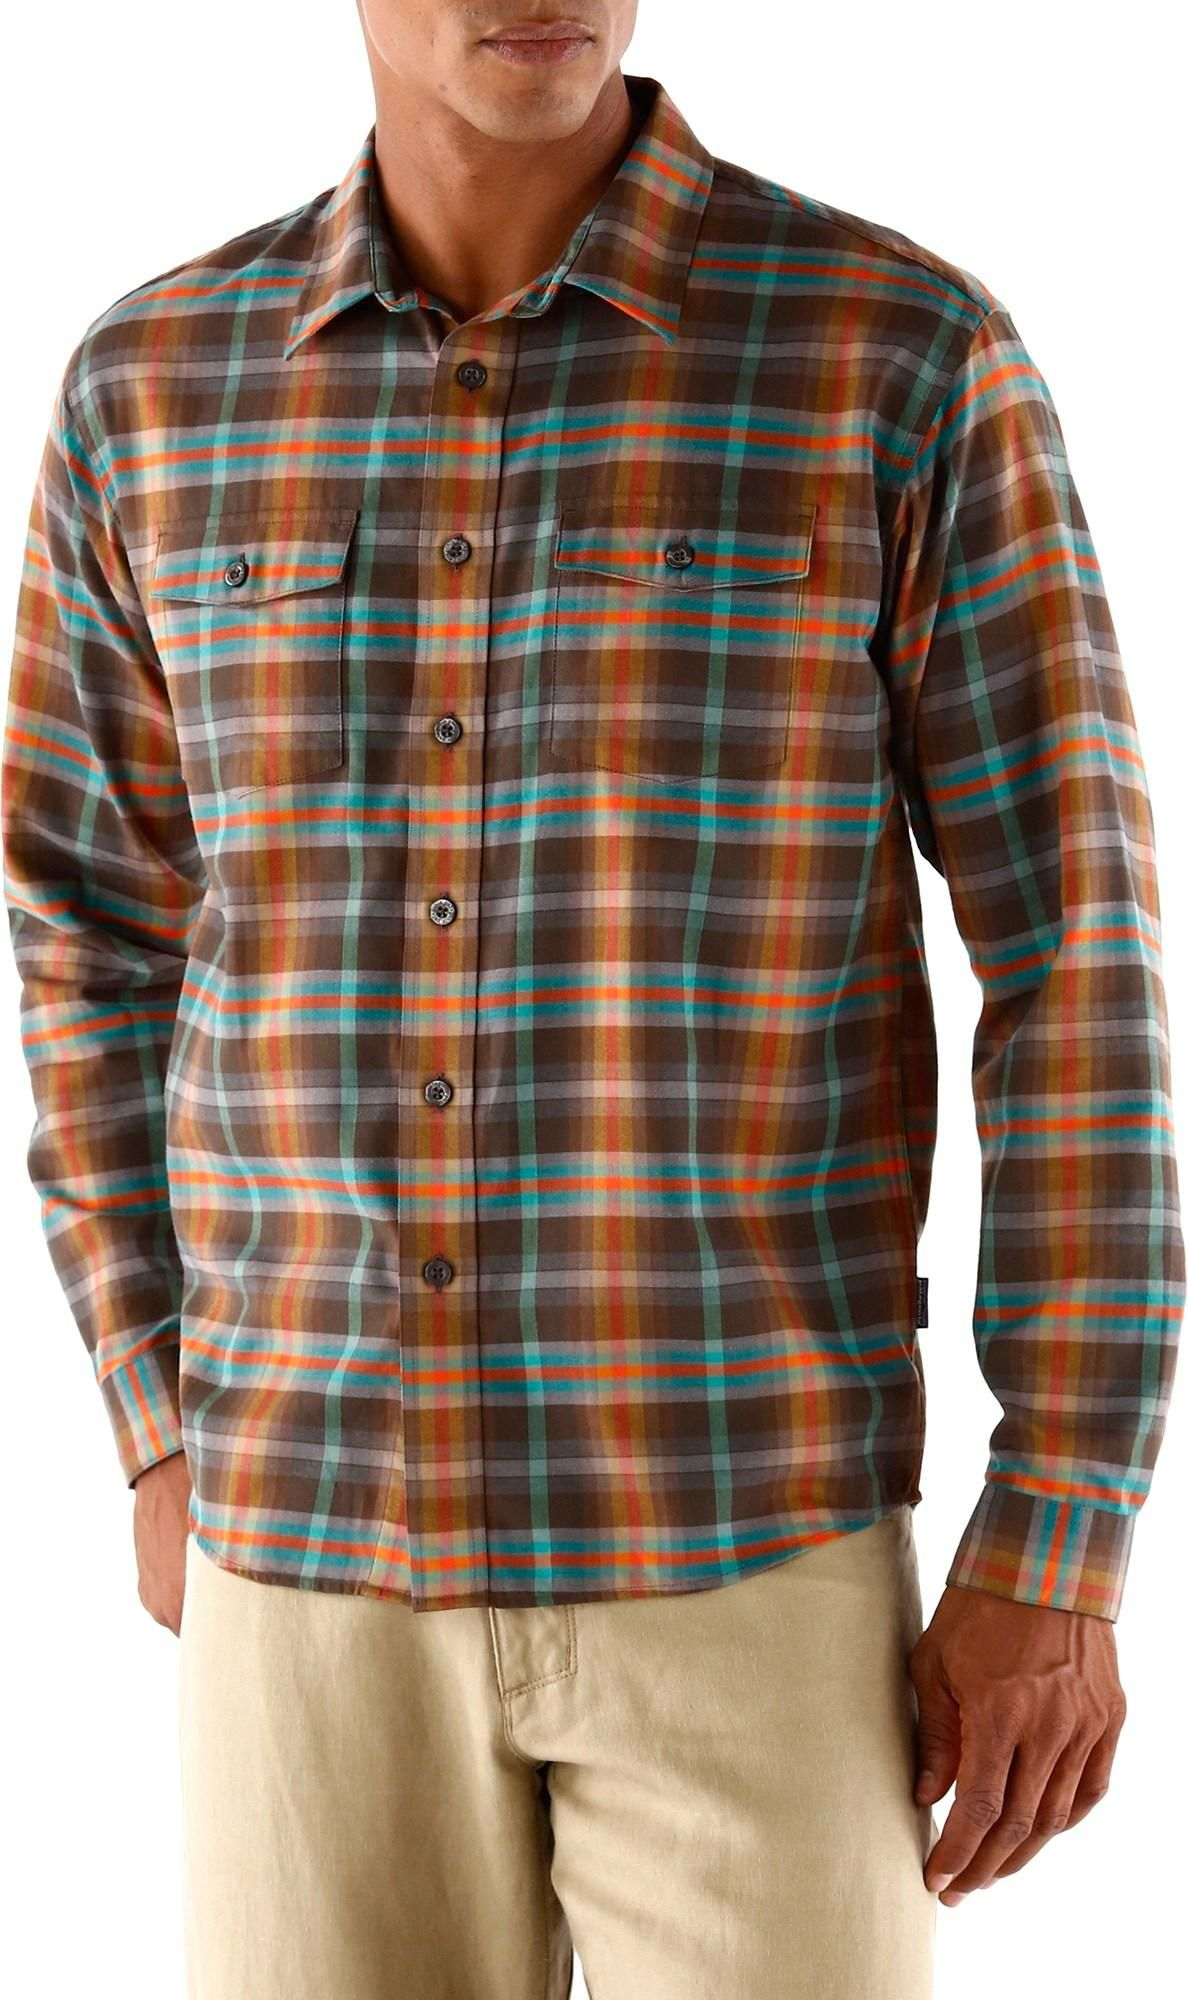 Flannel shirt men outfit  This midweight organic cottonpolyester flannel shirt is soft and